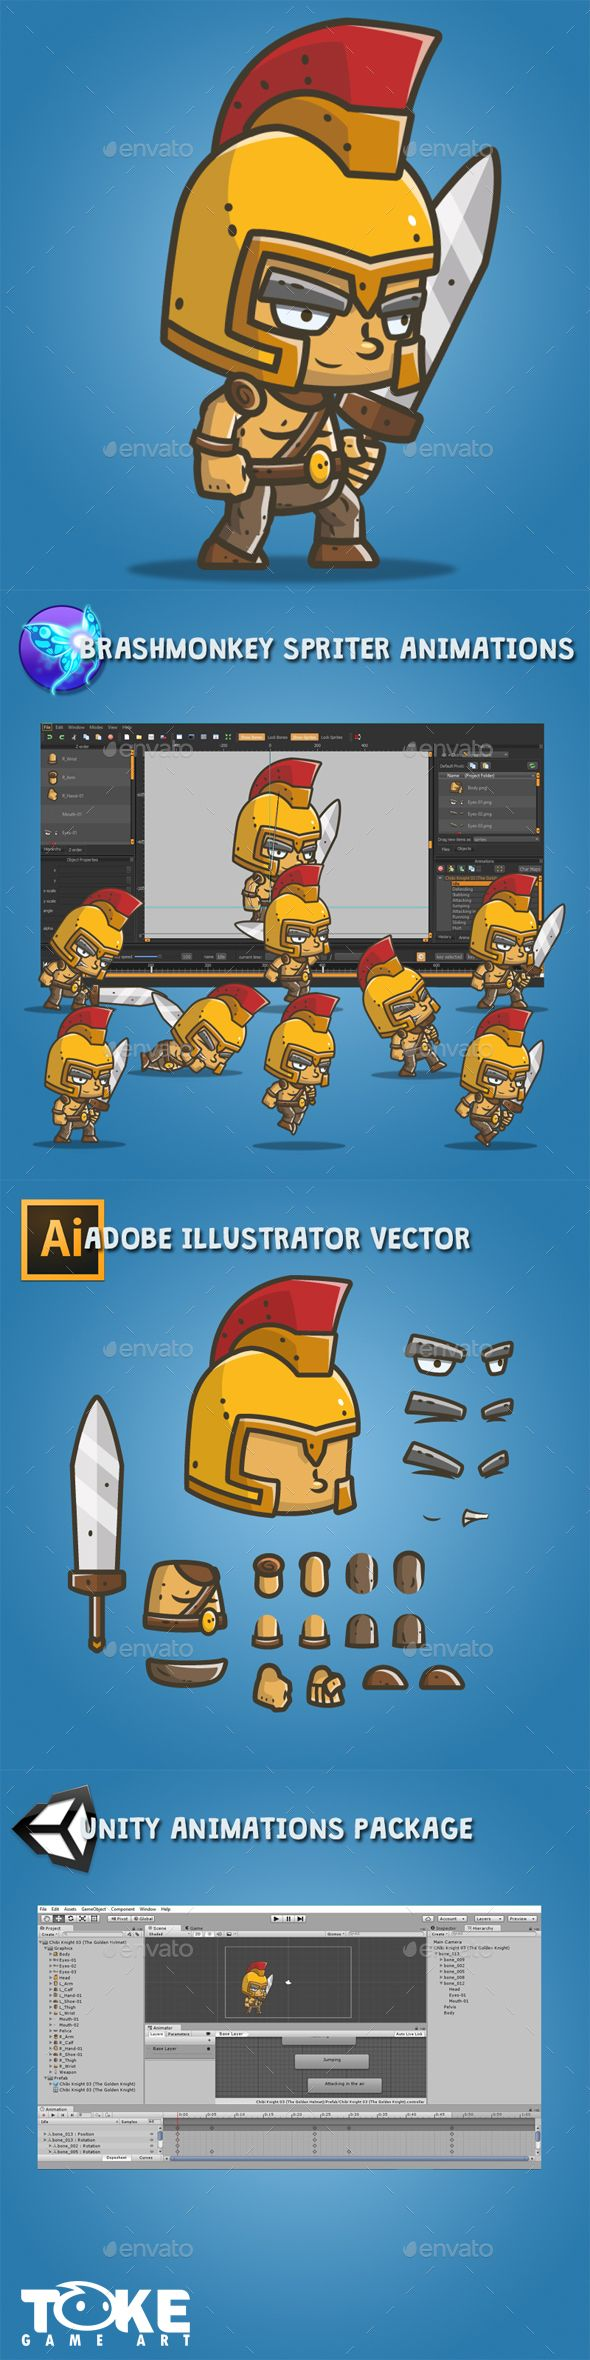 Chibi Knight – The Golden Helmet - Sprites #Game Assets Download here: https://graphicriver.net/item/chibi-knight-the-golden-helmet/18177395?ref=alena994